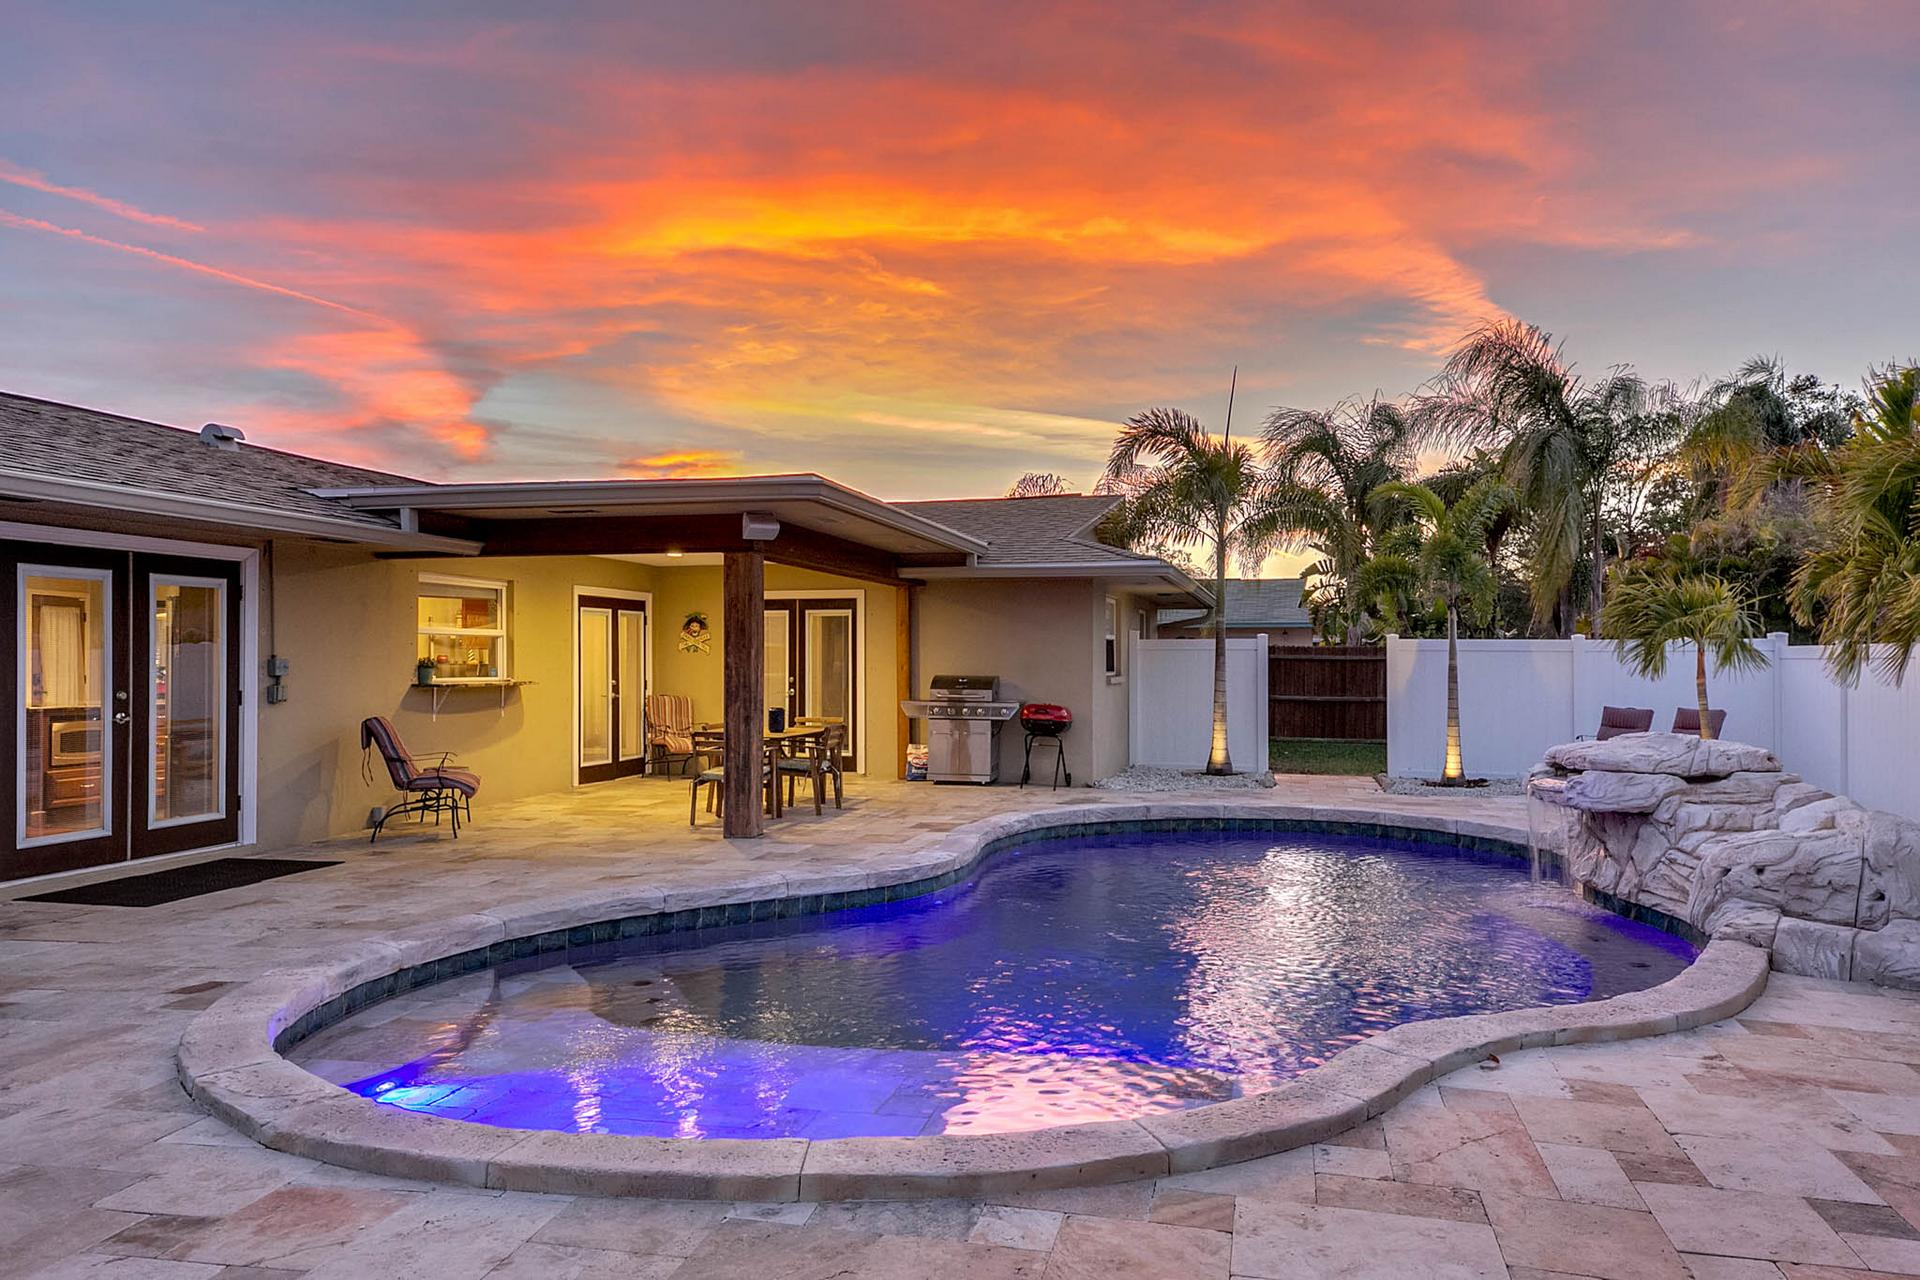 Seminole FL Vacation Rental Welcome to your